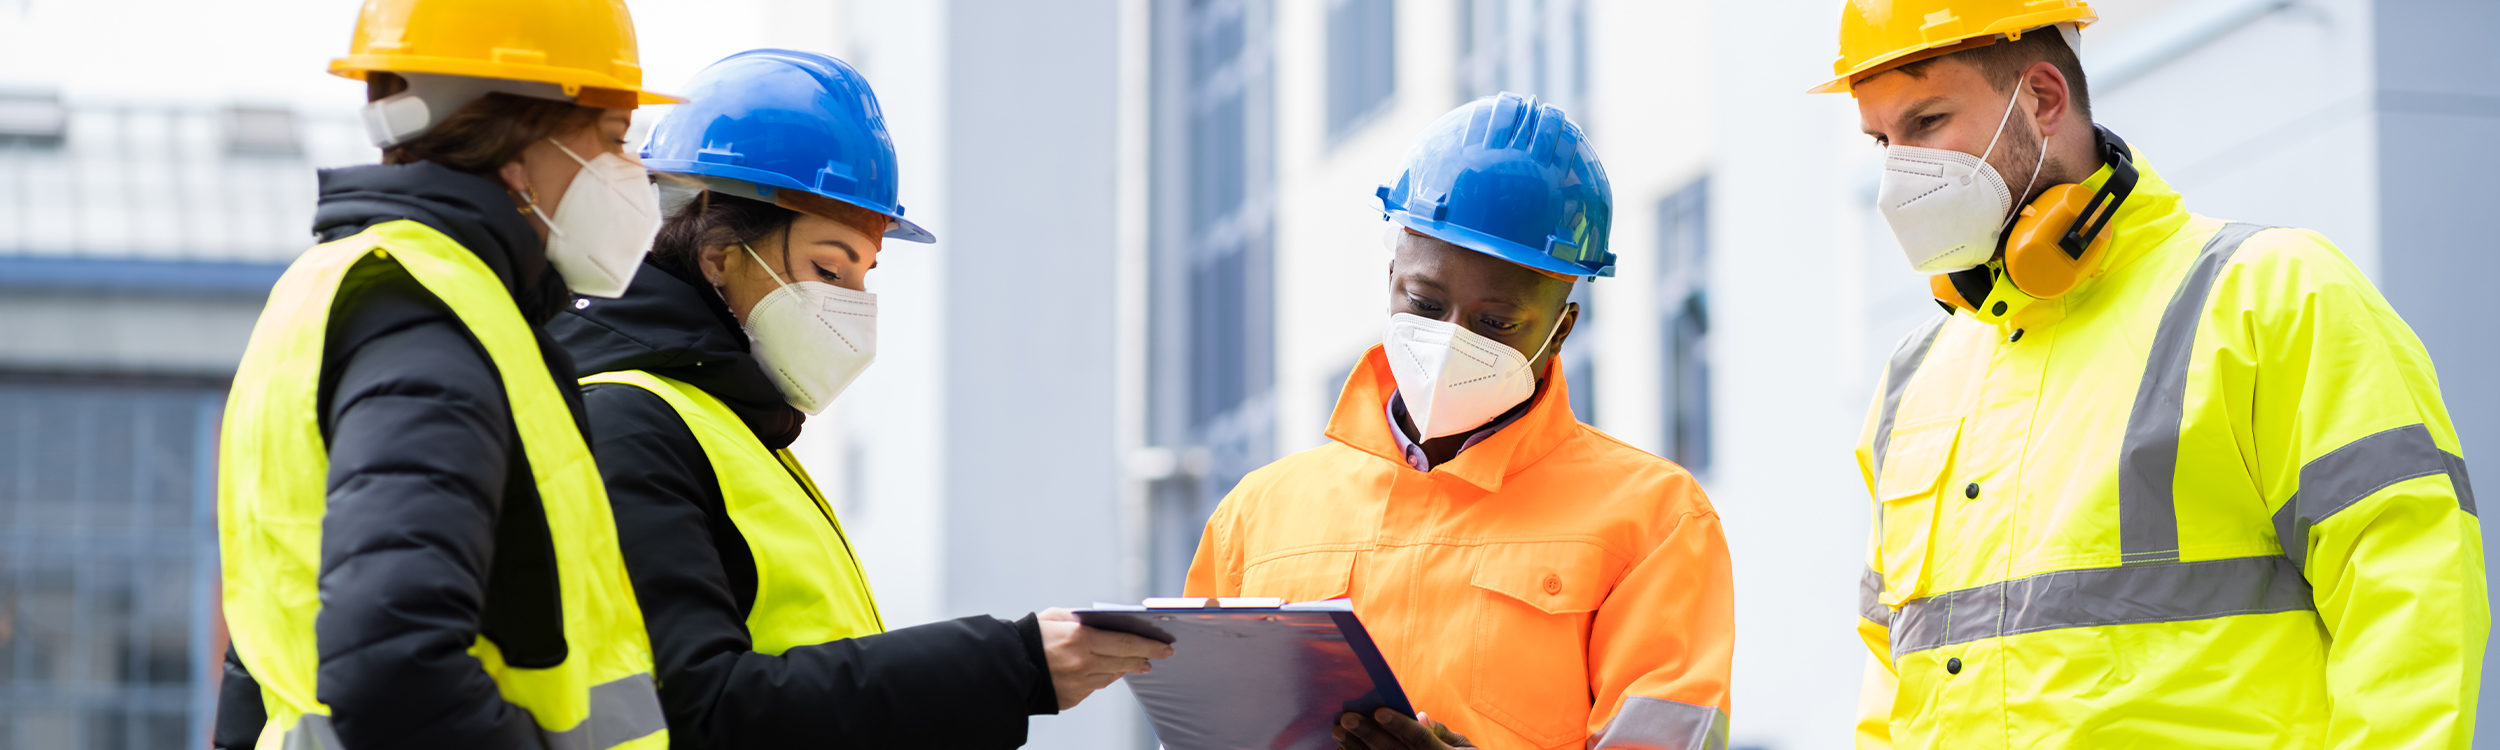 ISO 45001 Compliance with Integrated Health and Safety featured image